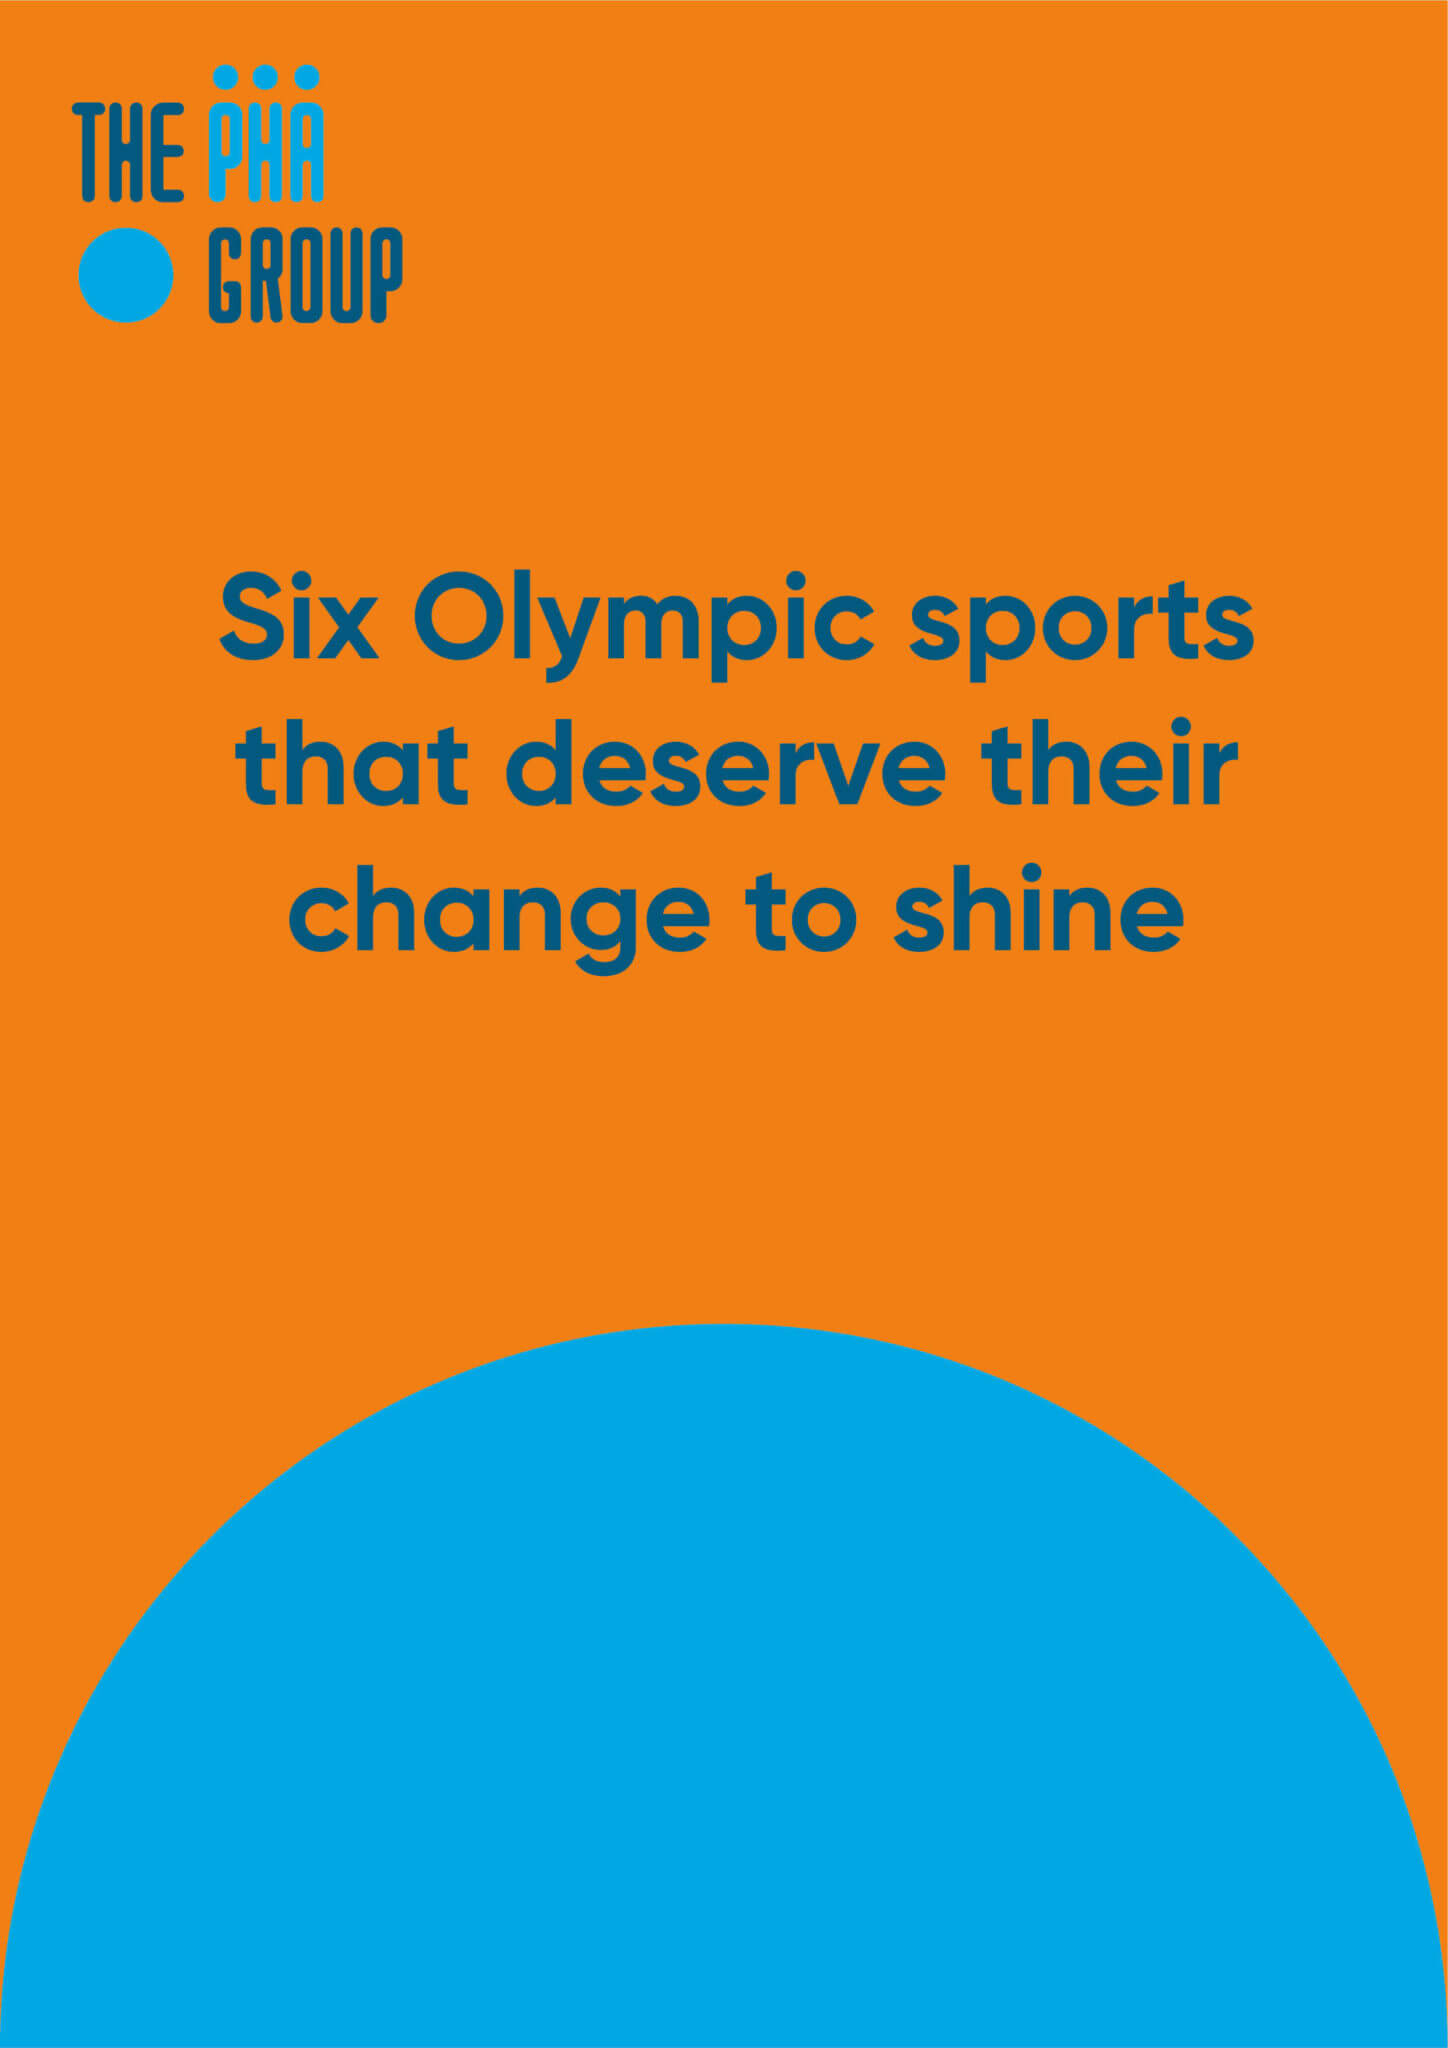 Six Olympic sports that deserve their chance to shine